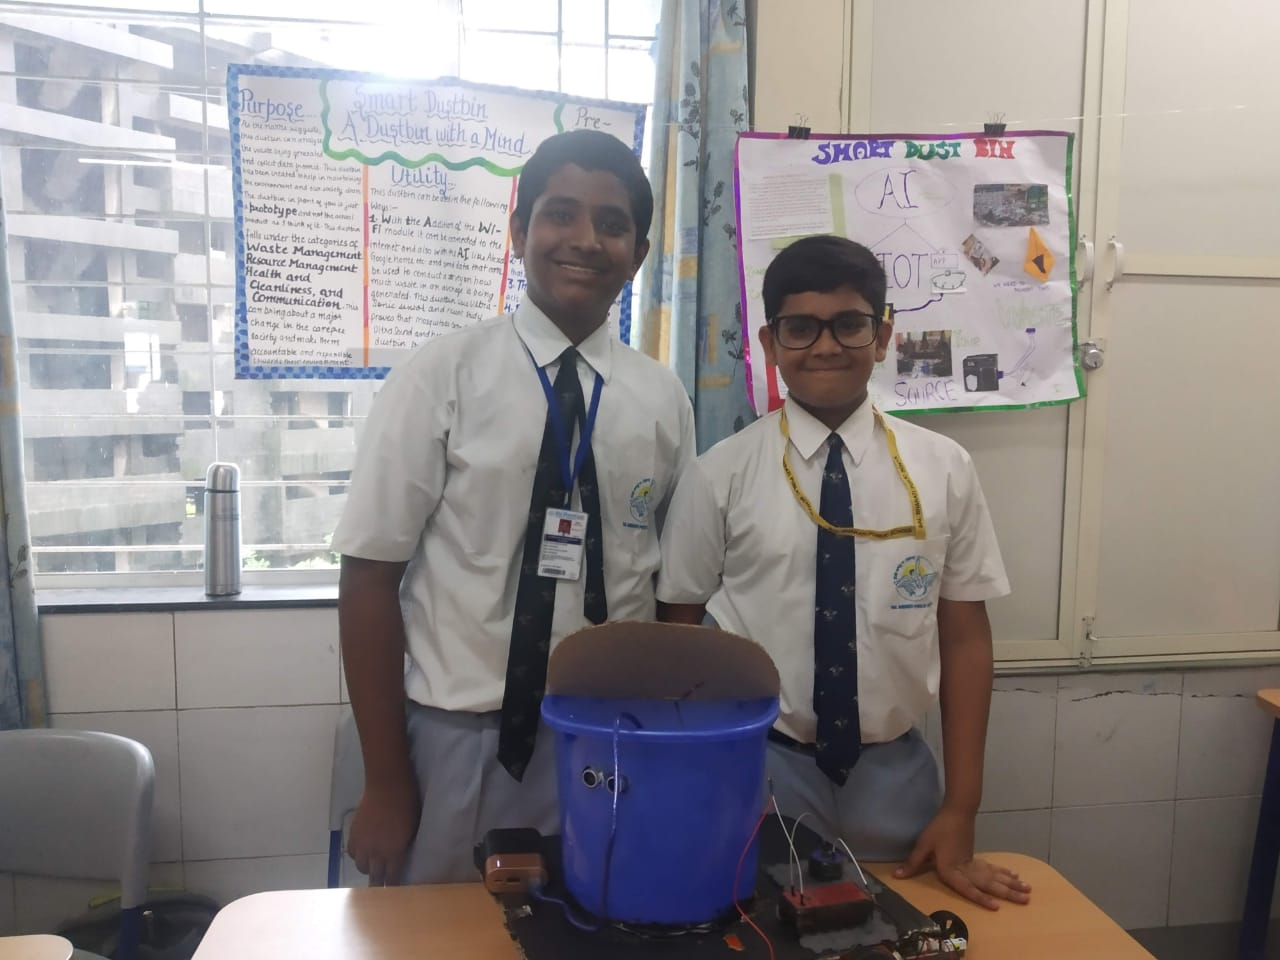 """Venkat along with his friend made a """"smart dustbin"""" using a motor taken out of a sewing machine. The dustbin can sense when someone approaches it and opens up itself!"""